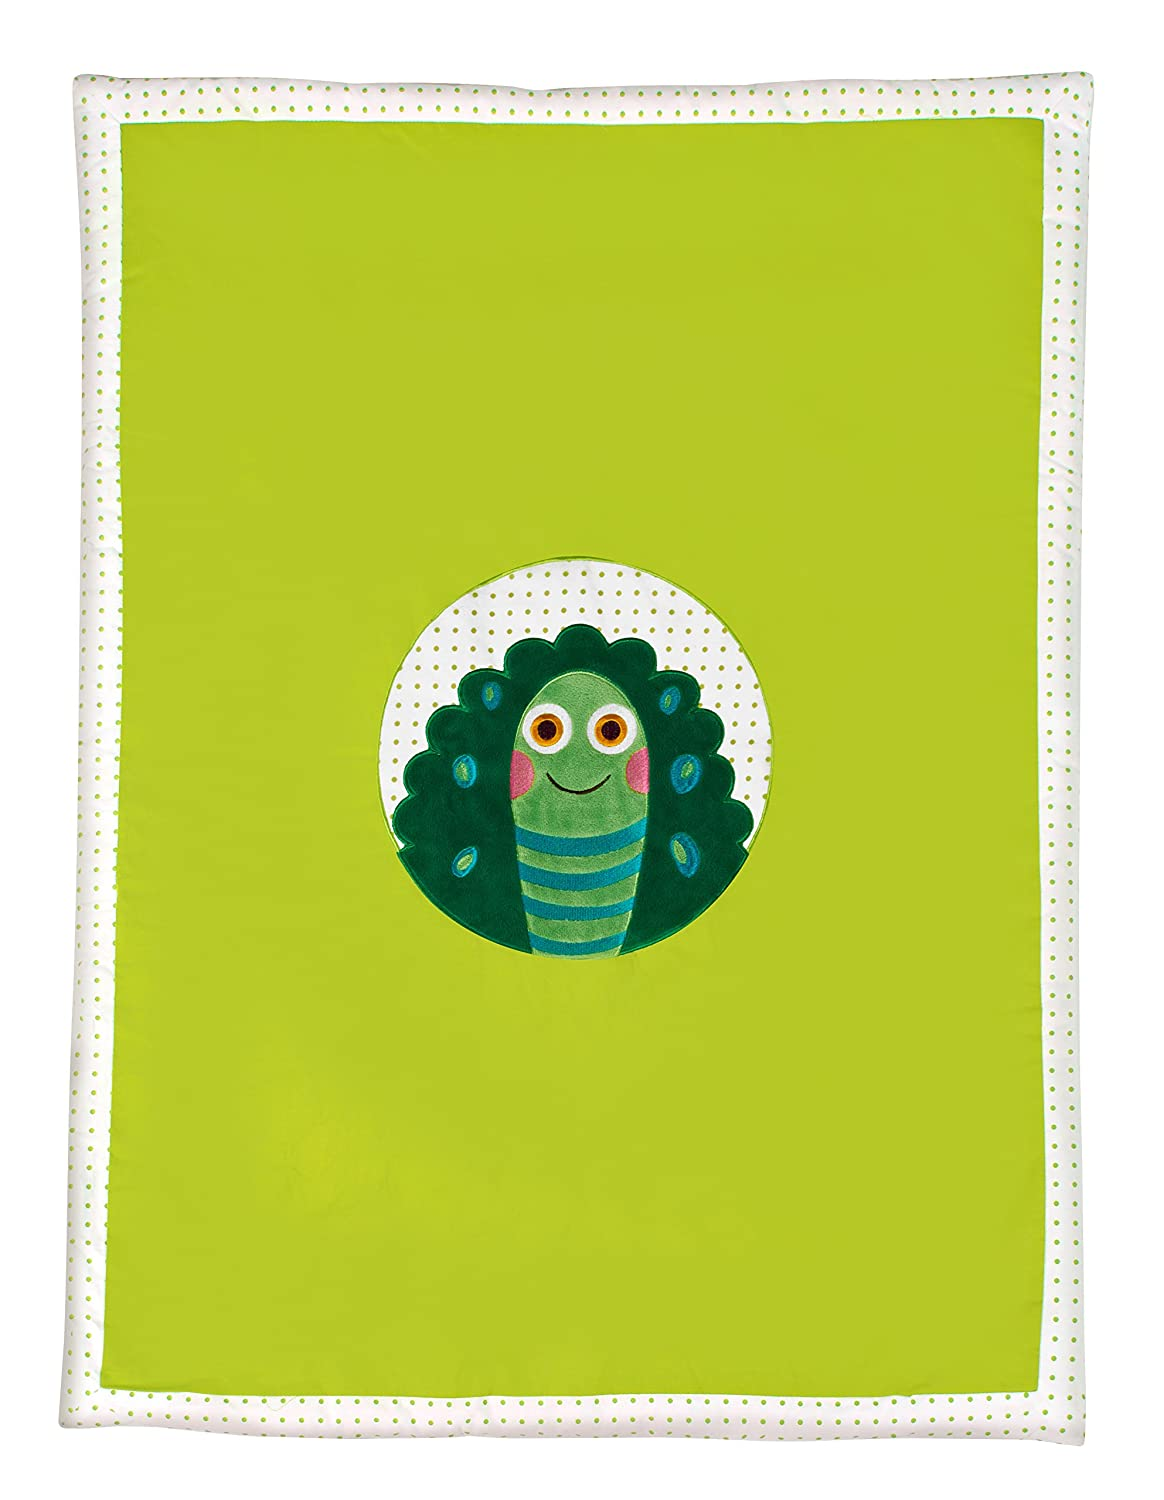 Little Helper Oops 100% Cotton Lightweight Cot Bed Duvet and Padded Play Mat in Cute Appliqué Turtle Design (Soft Lime Green) 51001.23